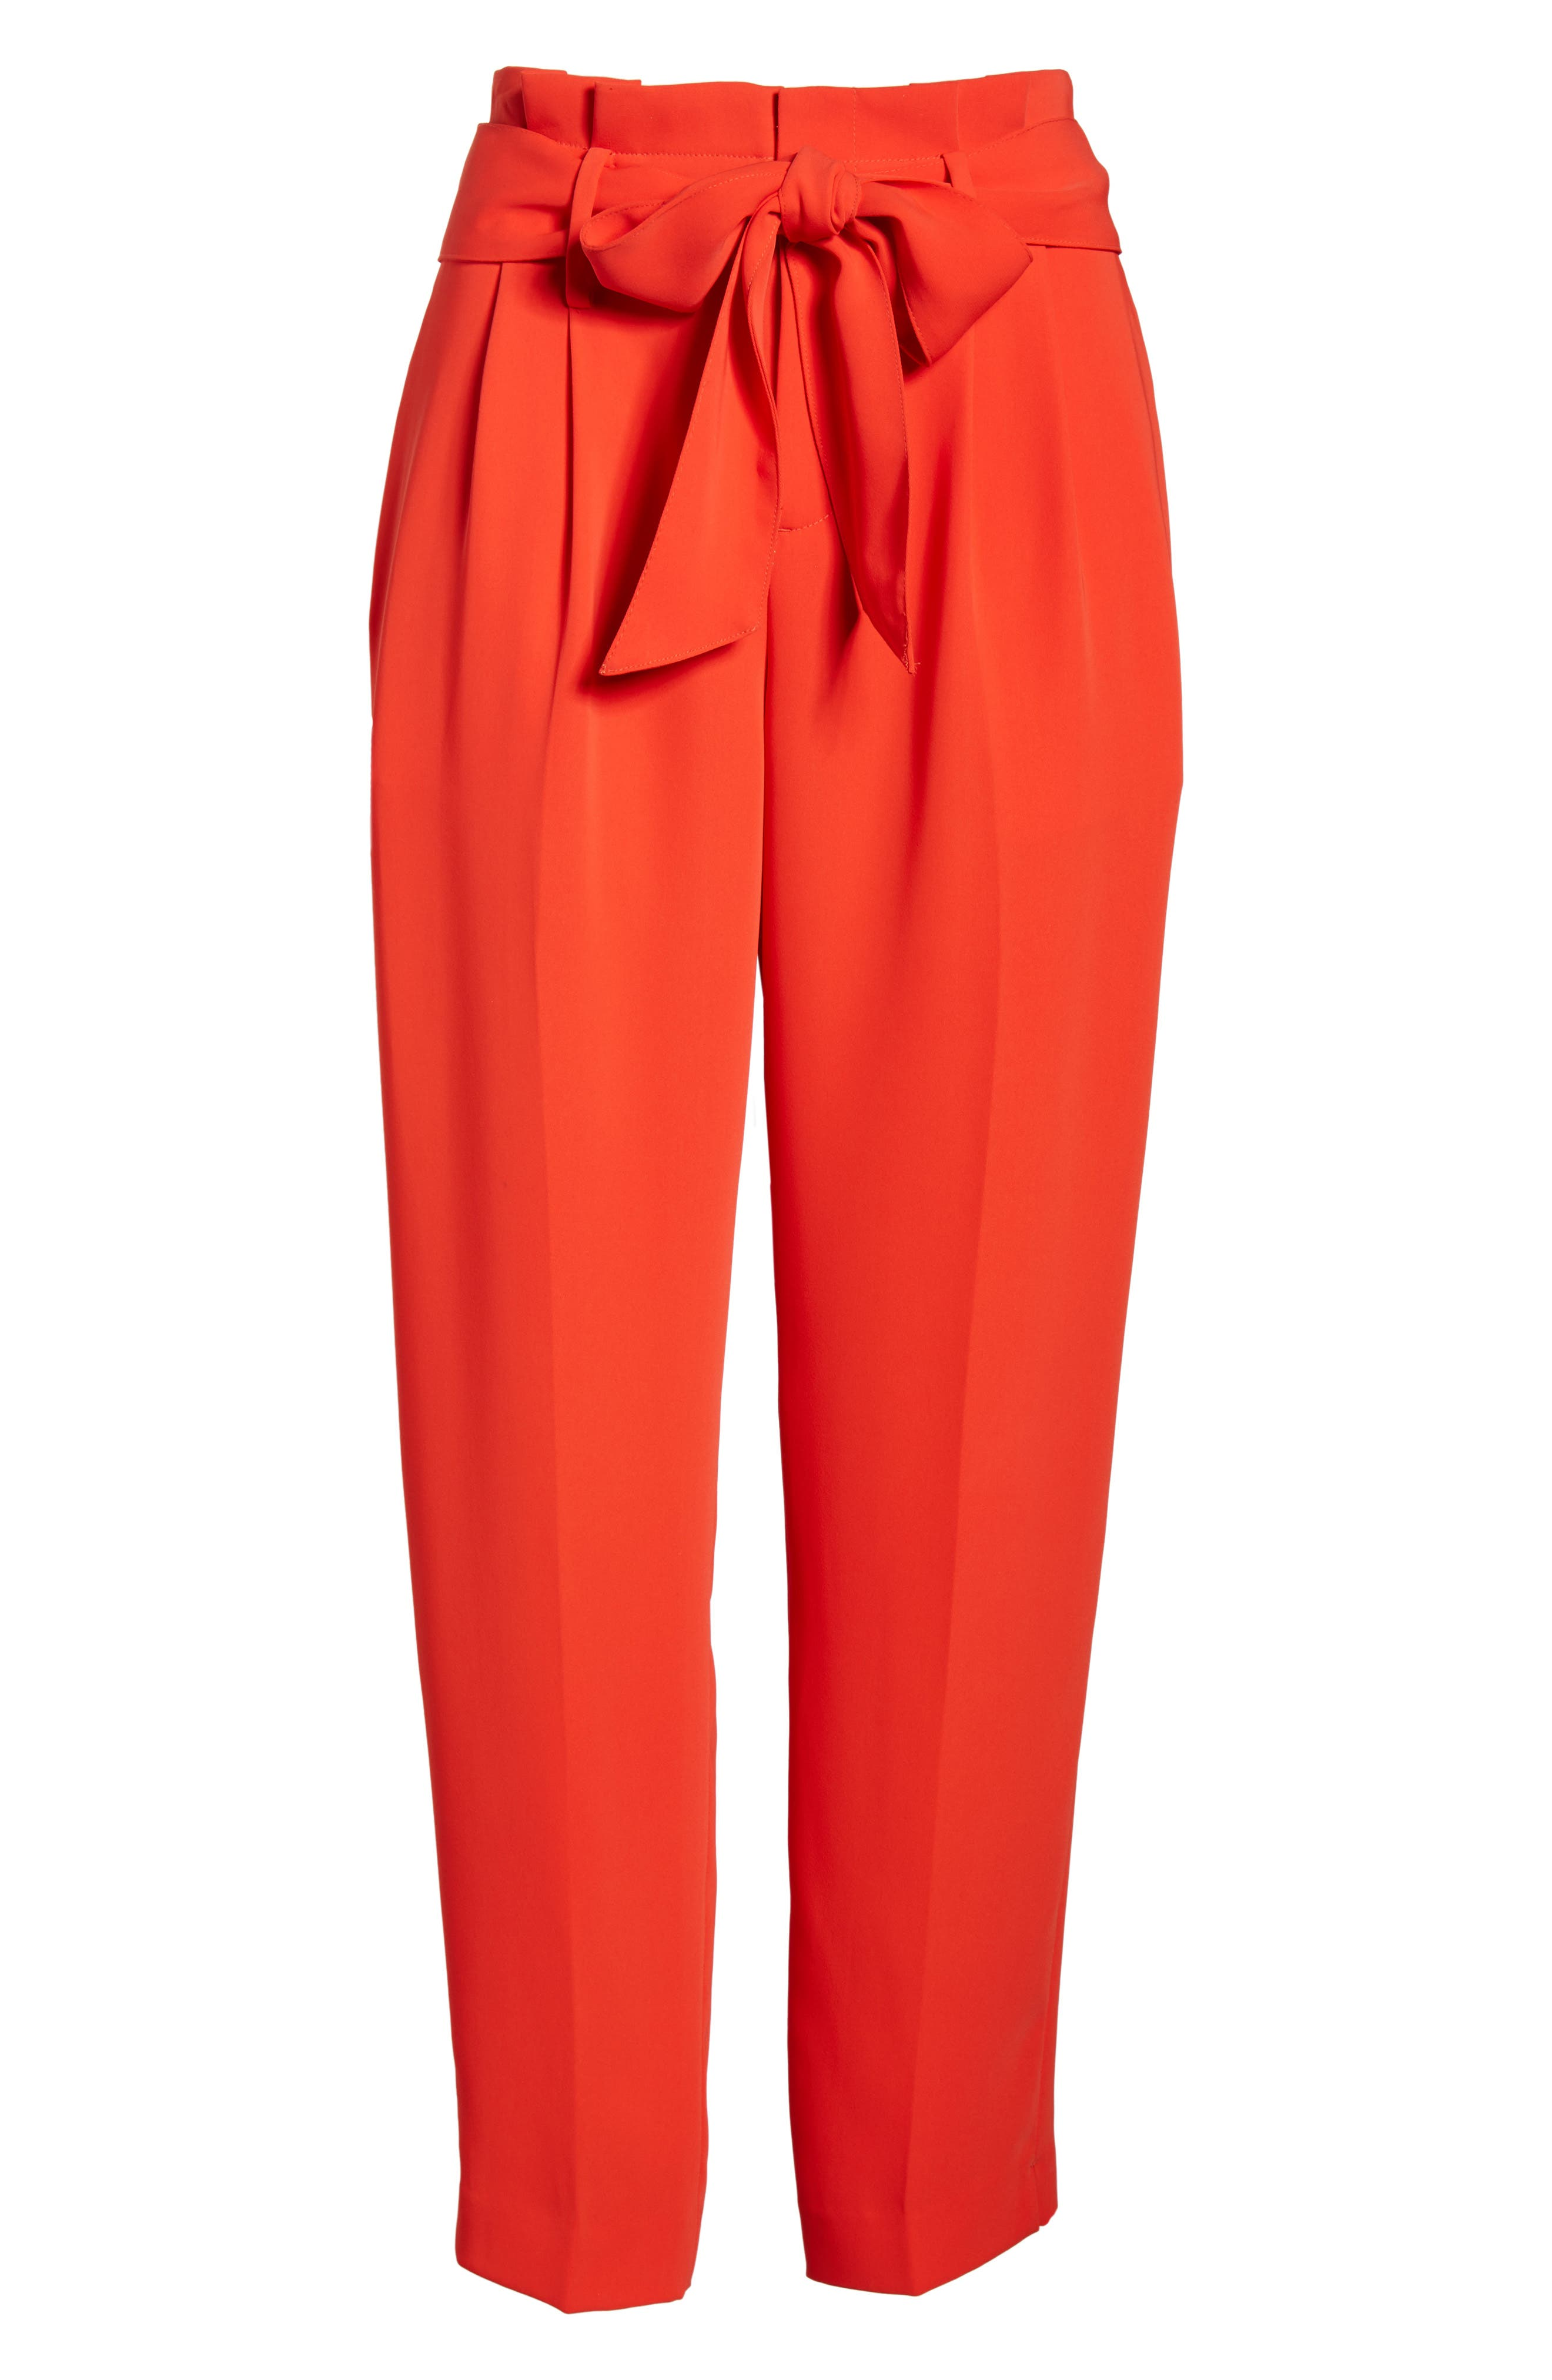 Paperbag Waist Crop Trousers,                             Alternate thumbnail 6, color,                             Red Pop